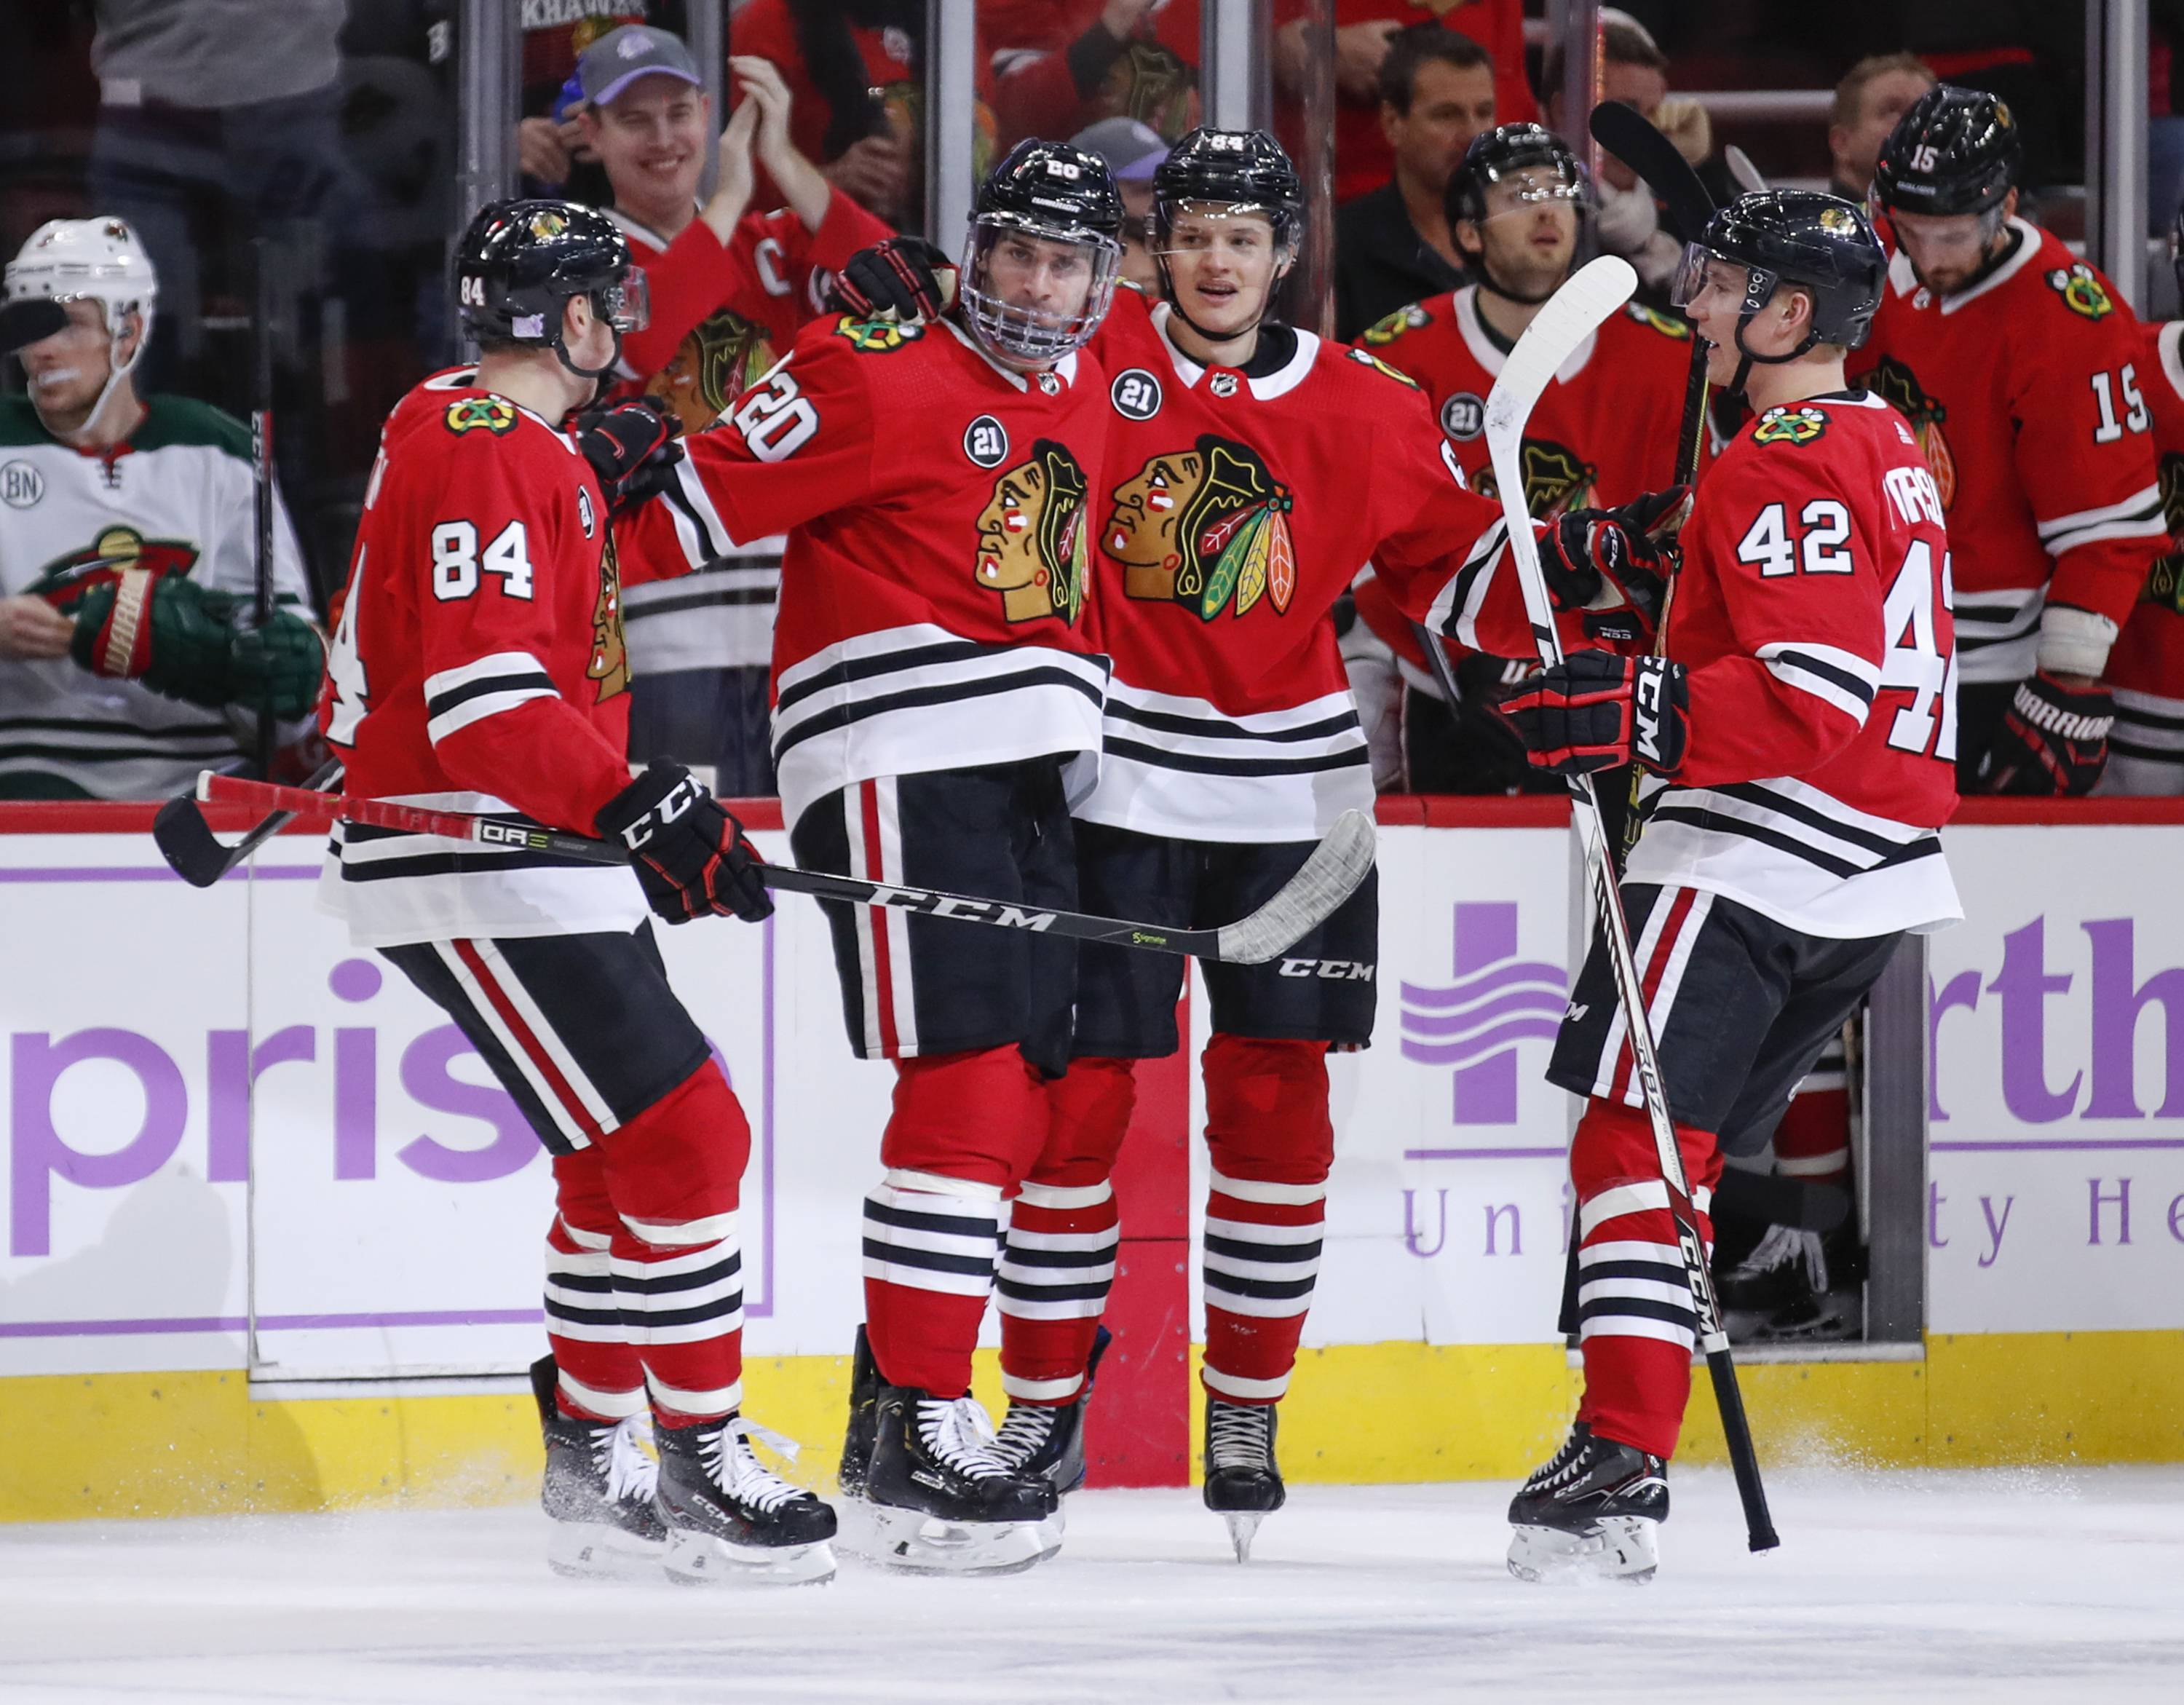 Chicago Blackhawks left wing Brandon Saad (20) celebrates with teammates after scoring against the Minnesota Wild during the first period of an NHL hockey game Sunday, Nov. 18, 2018, in Chicago.